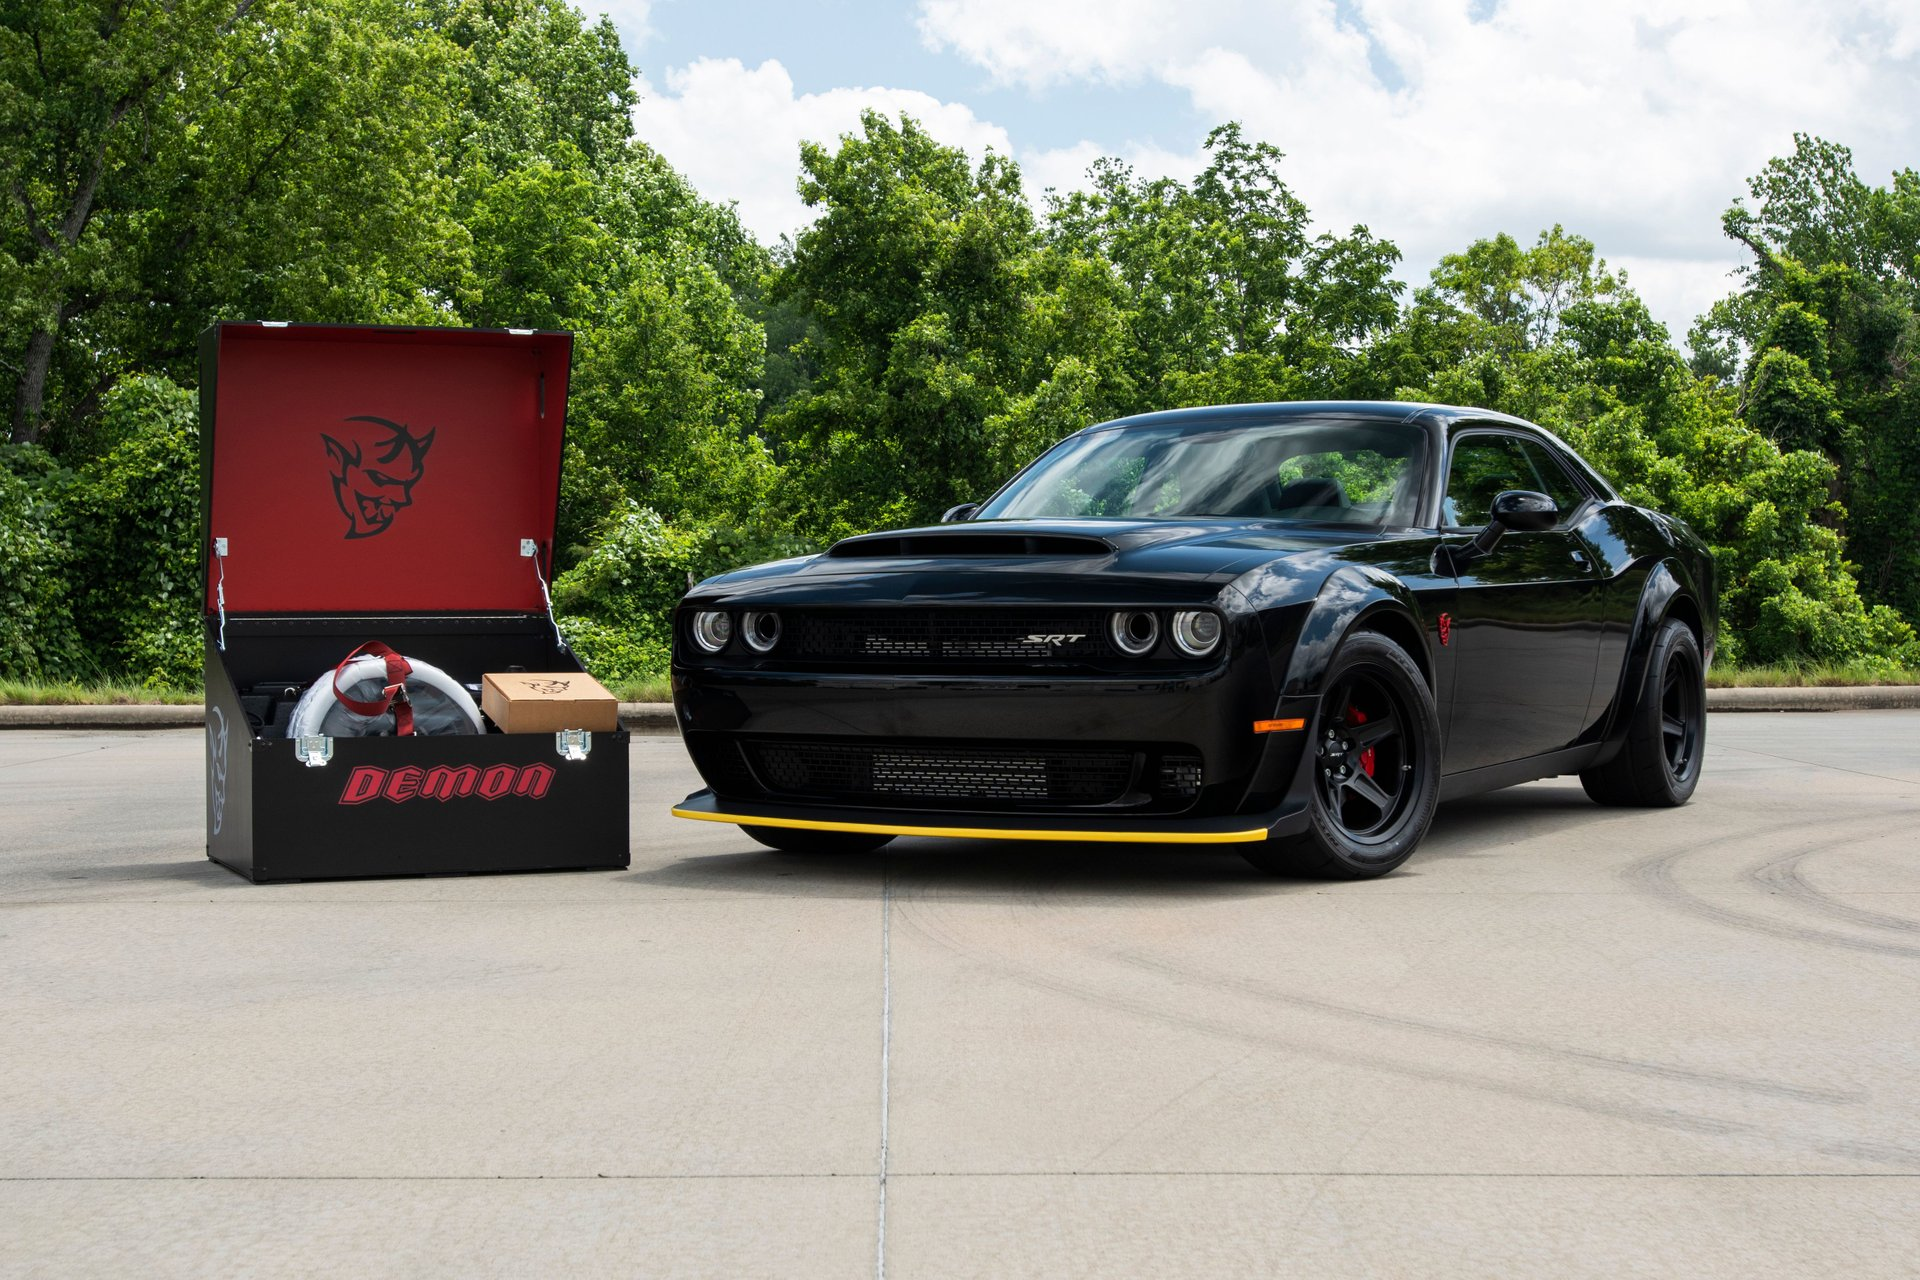 For Sale 2018 Dodge Challenger Srt Demon Shows Only 483 Miles From New Autoevolution